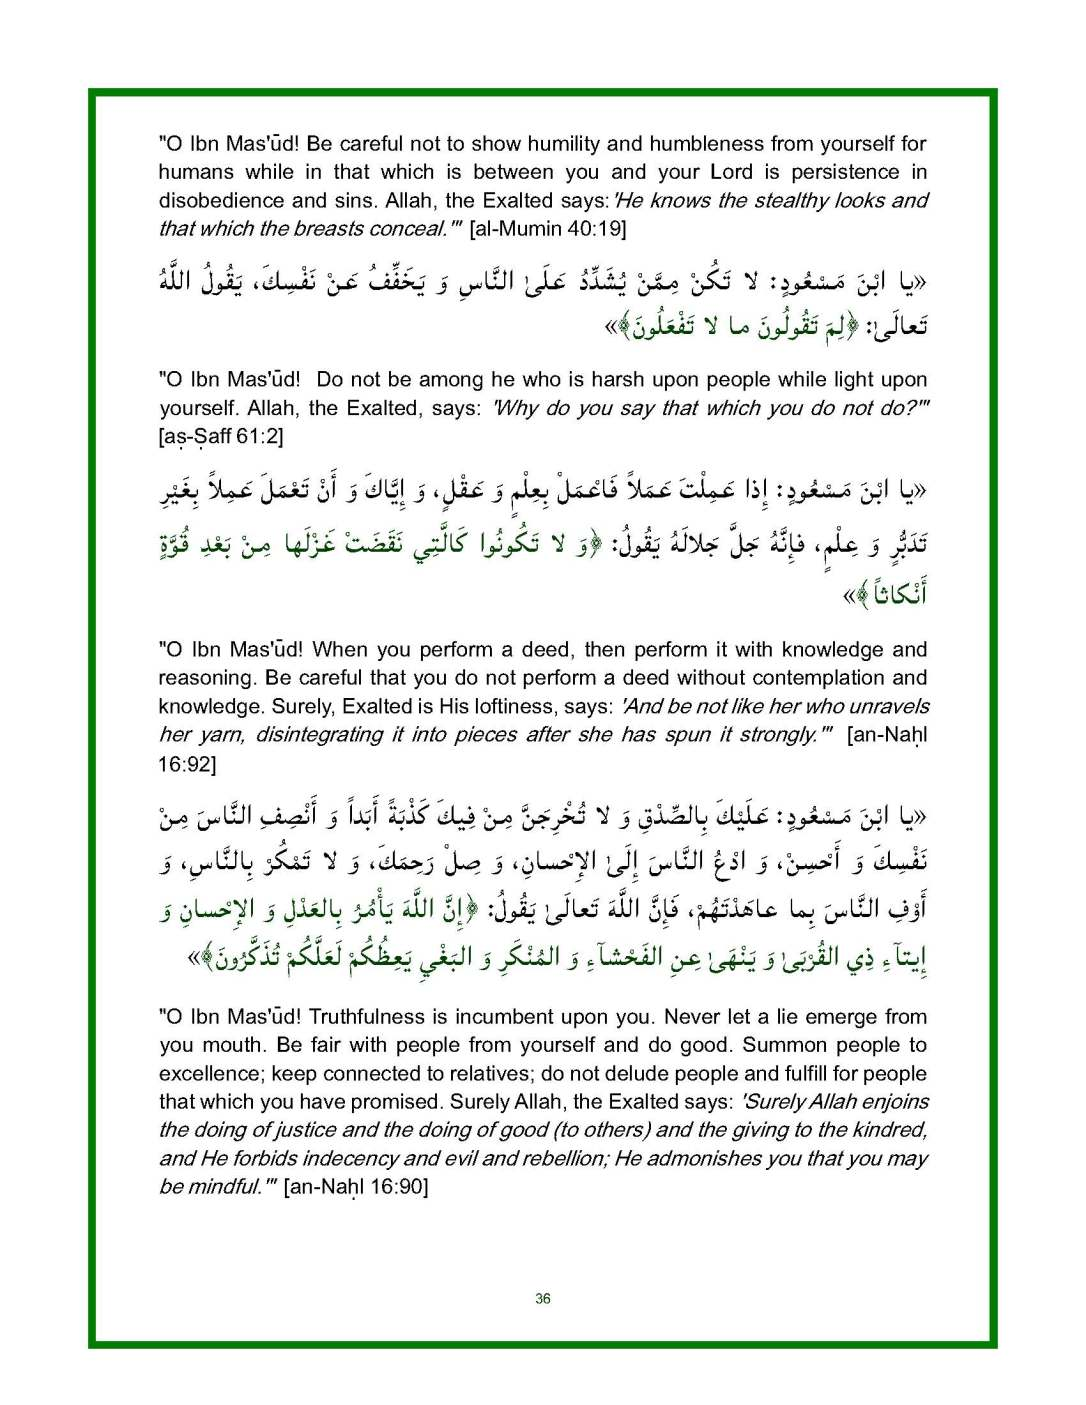 Spiritual-Advice-of-the-Messenger-of-Allah-for-Ibn-Masud-unlocked_Page_36